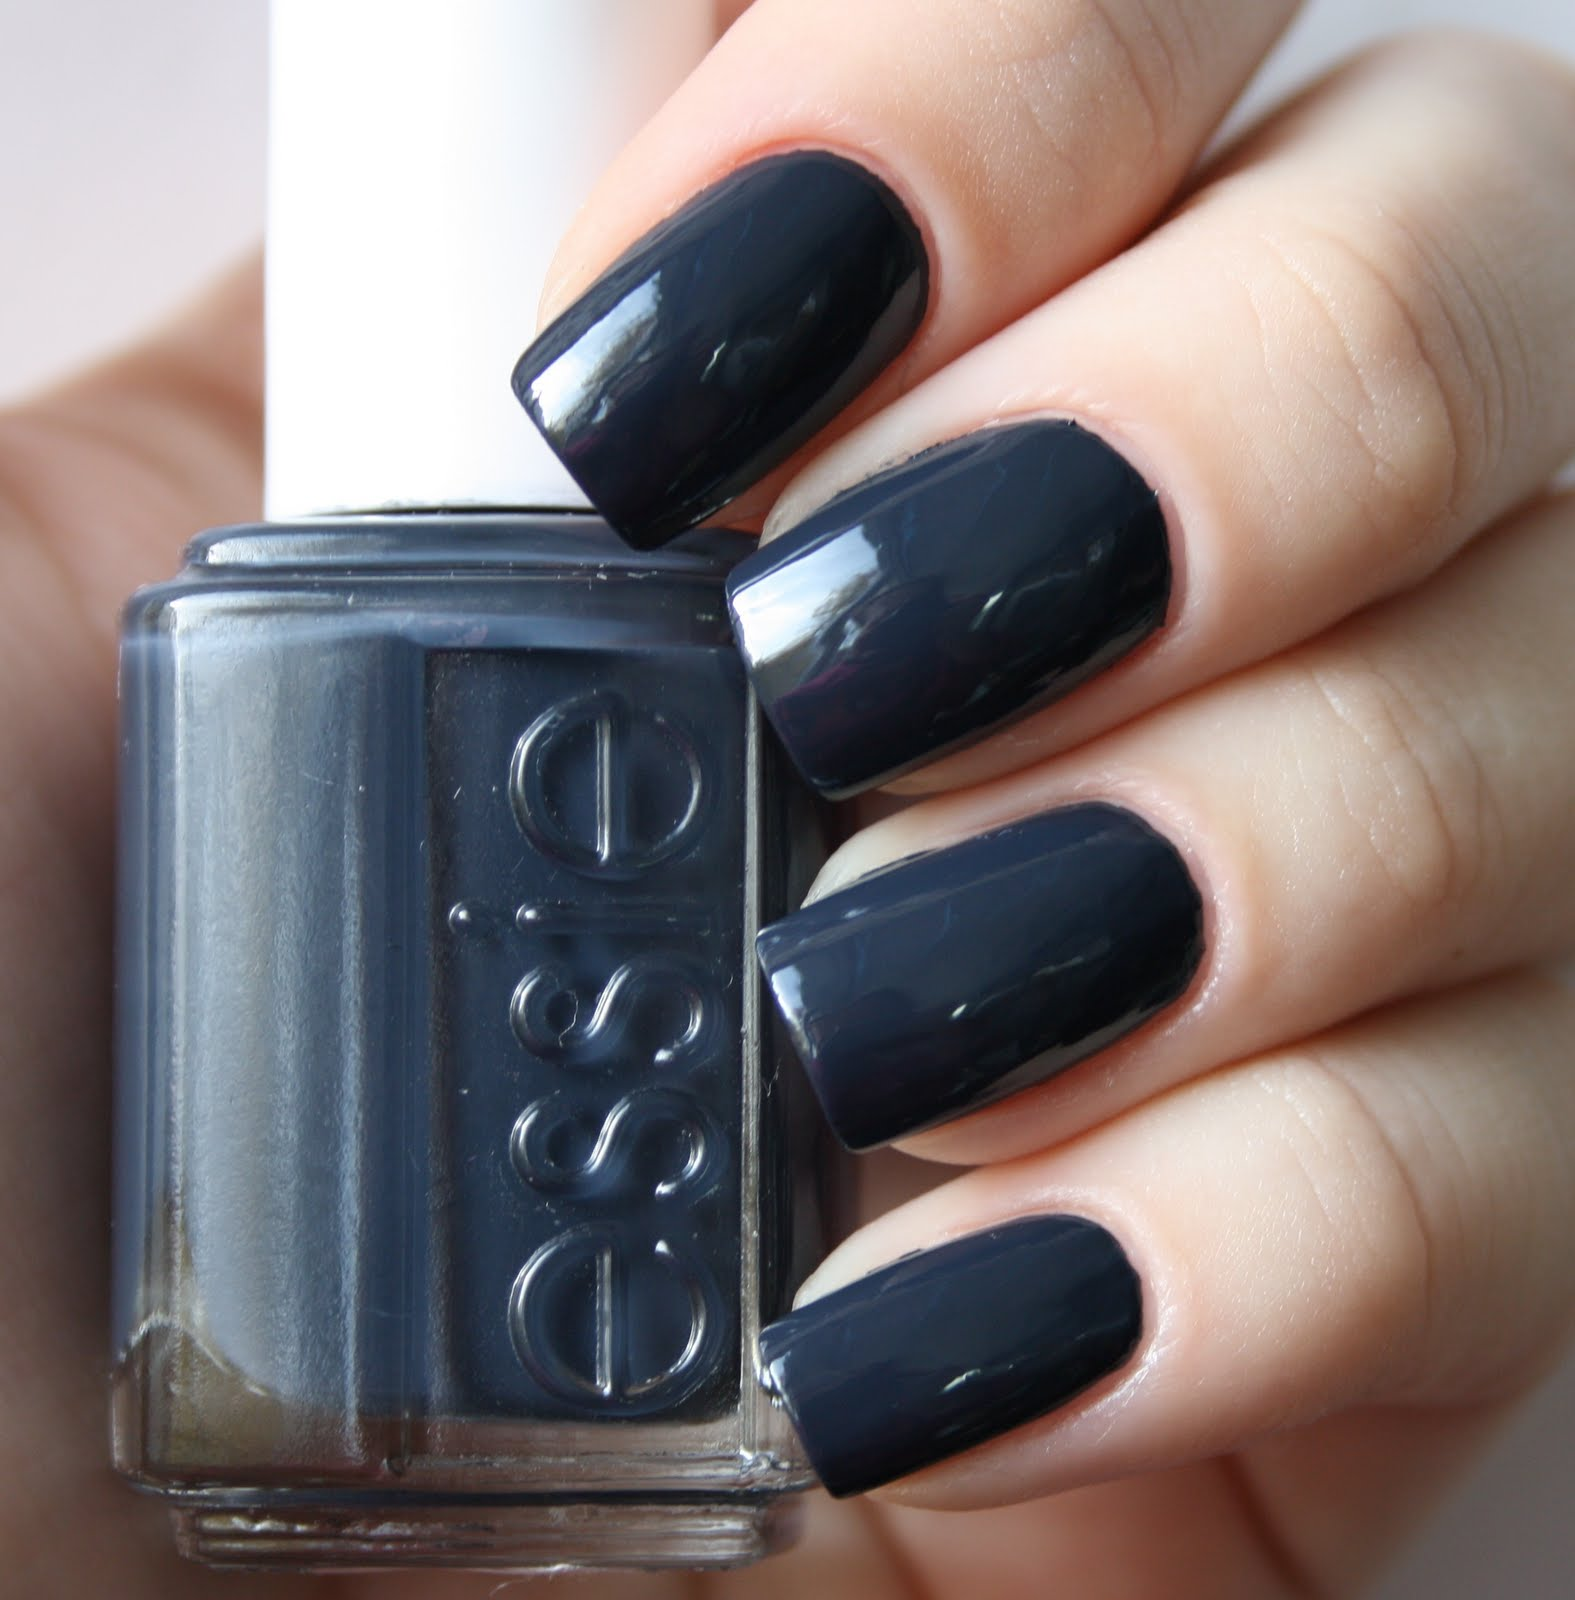 vique 39 s varnish essie bobbing for baubles. Black Bedroom Furniture Sets. Home Design Ideas